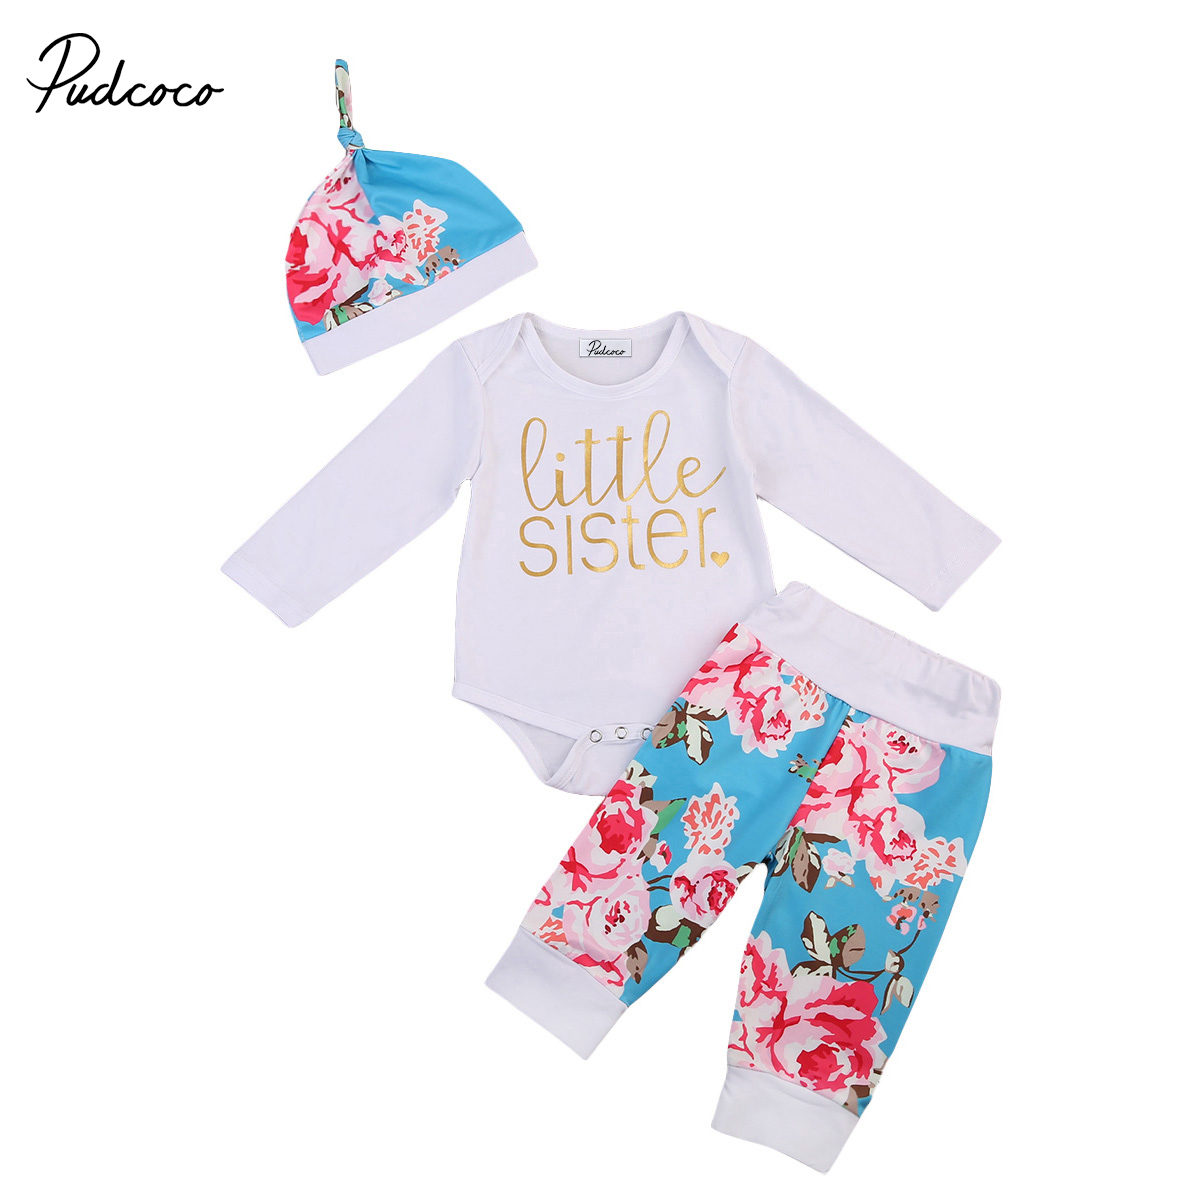 Pudcoco Newborn Baby Girl Clothes Long Sleeve White Romper Bodysuit Floral Pants Hat 3pcs Outfits Cute Fashion baby sets